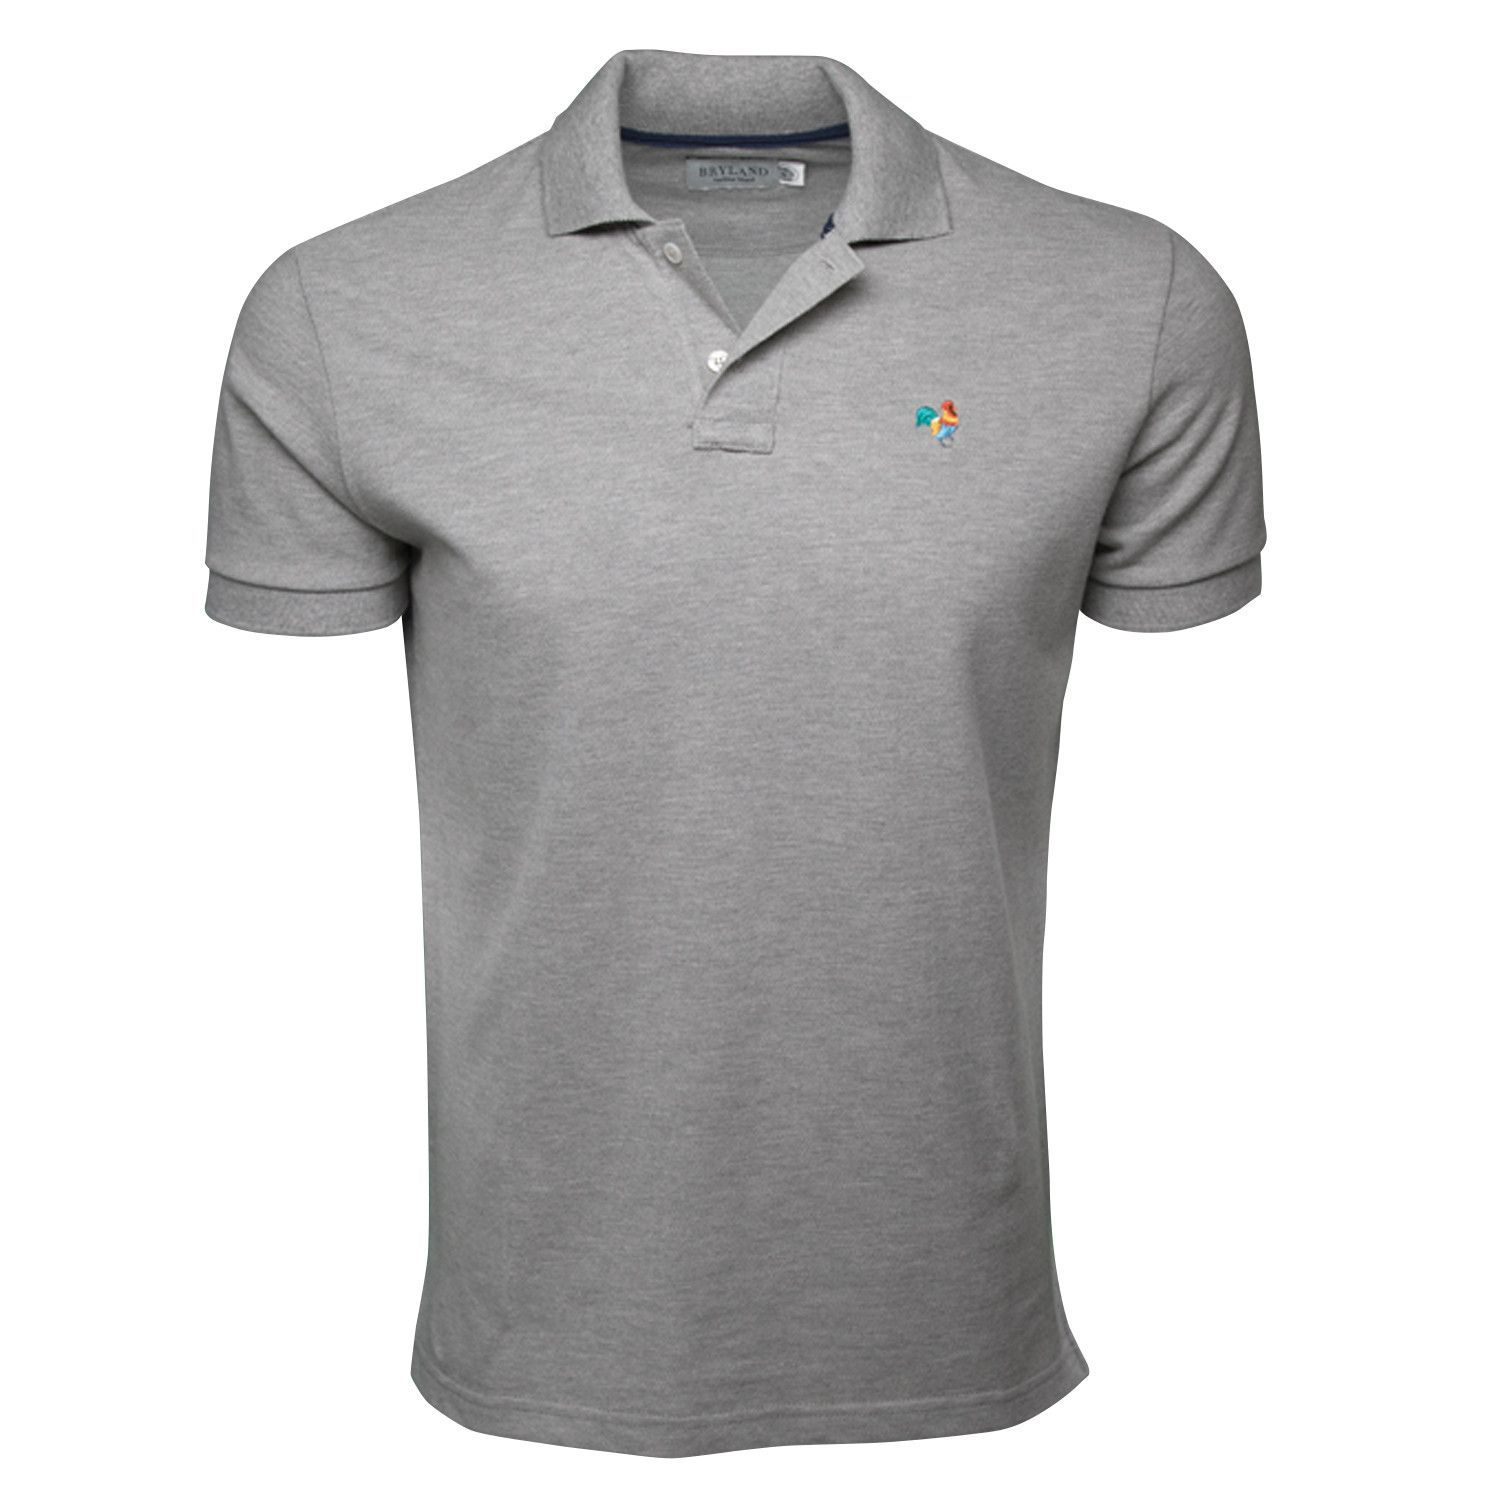 8bd65118f Heather Grey Polo Shirt with Multi-Color Rooster | alumni shirt ...